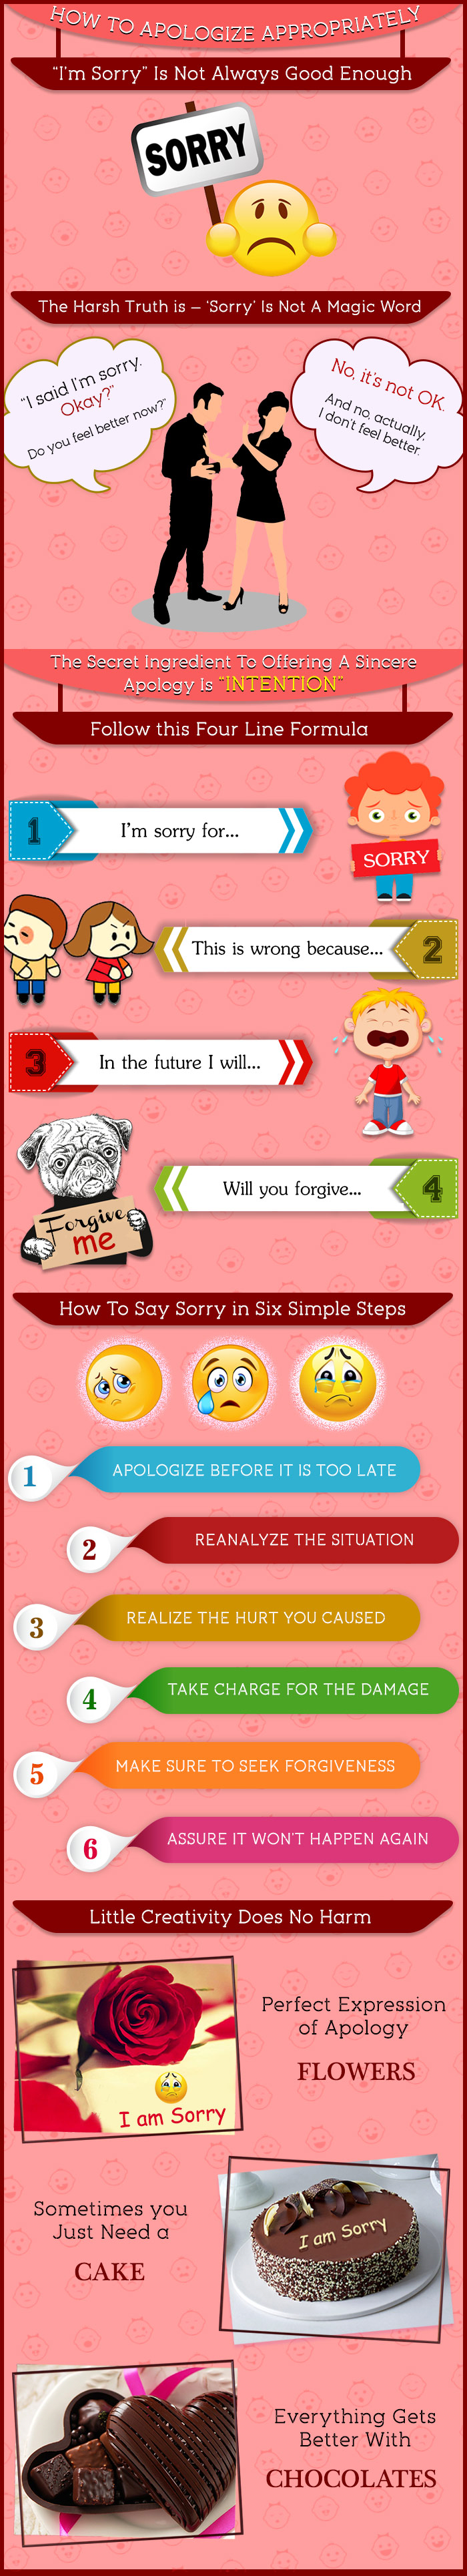 Ways To Apologize in the Best Manner